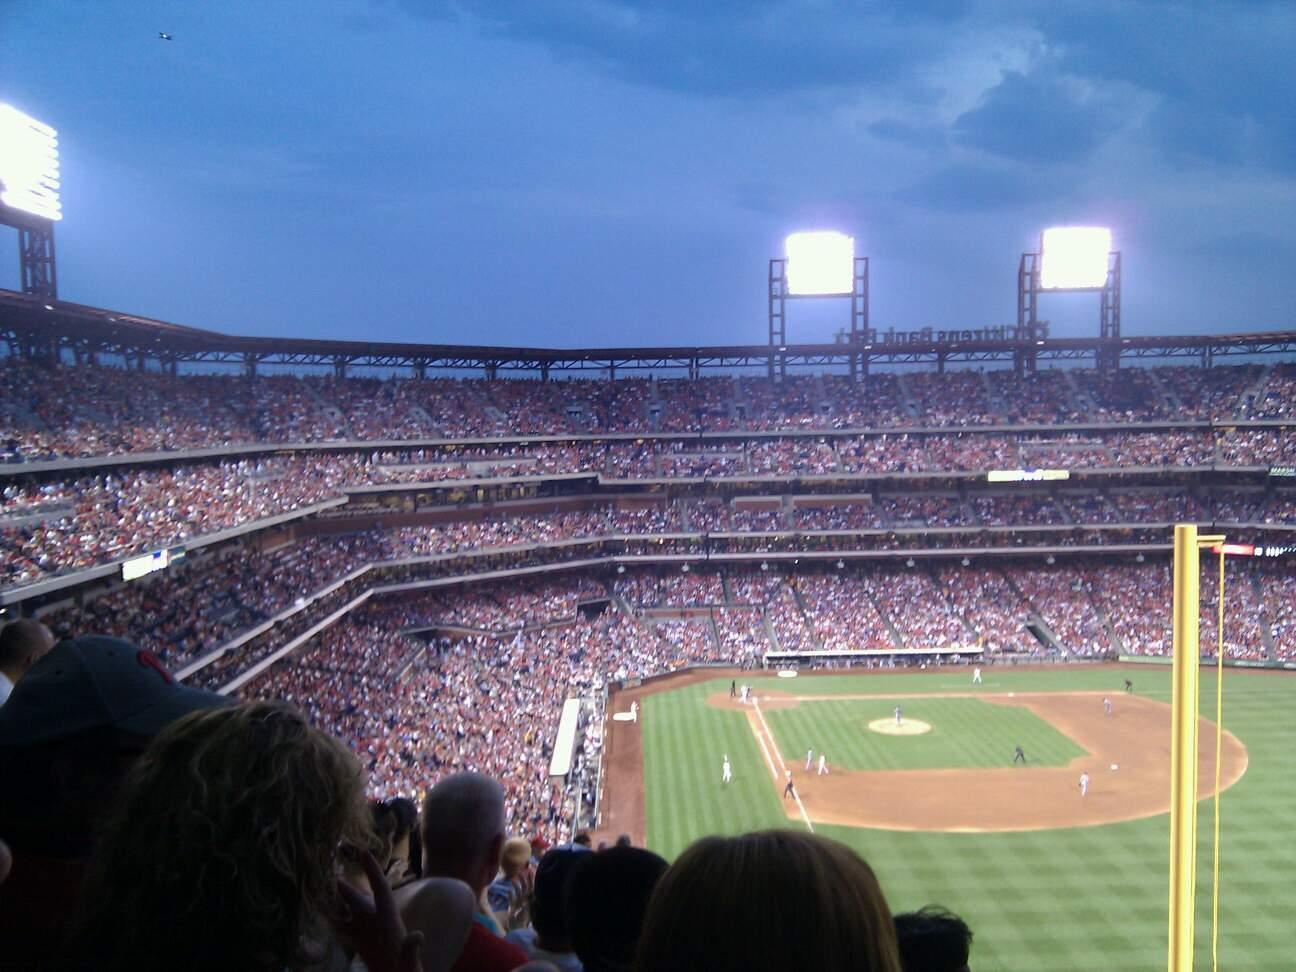 Citizens Bank Park Section 306 Row 18 Seat 5